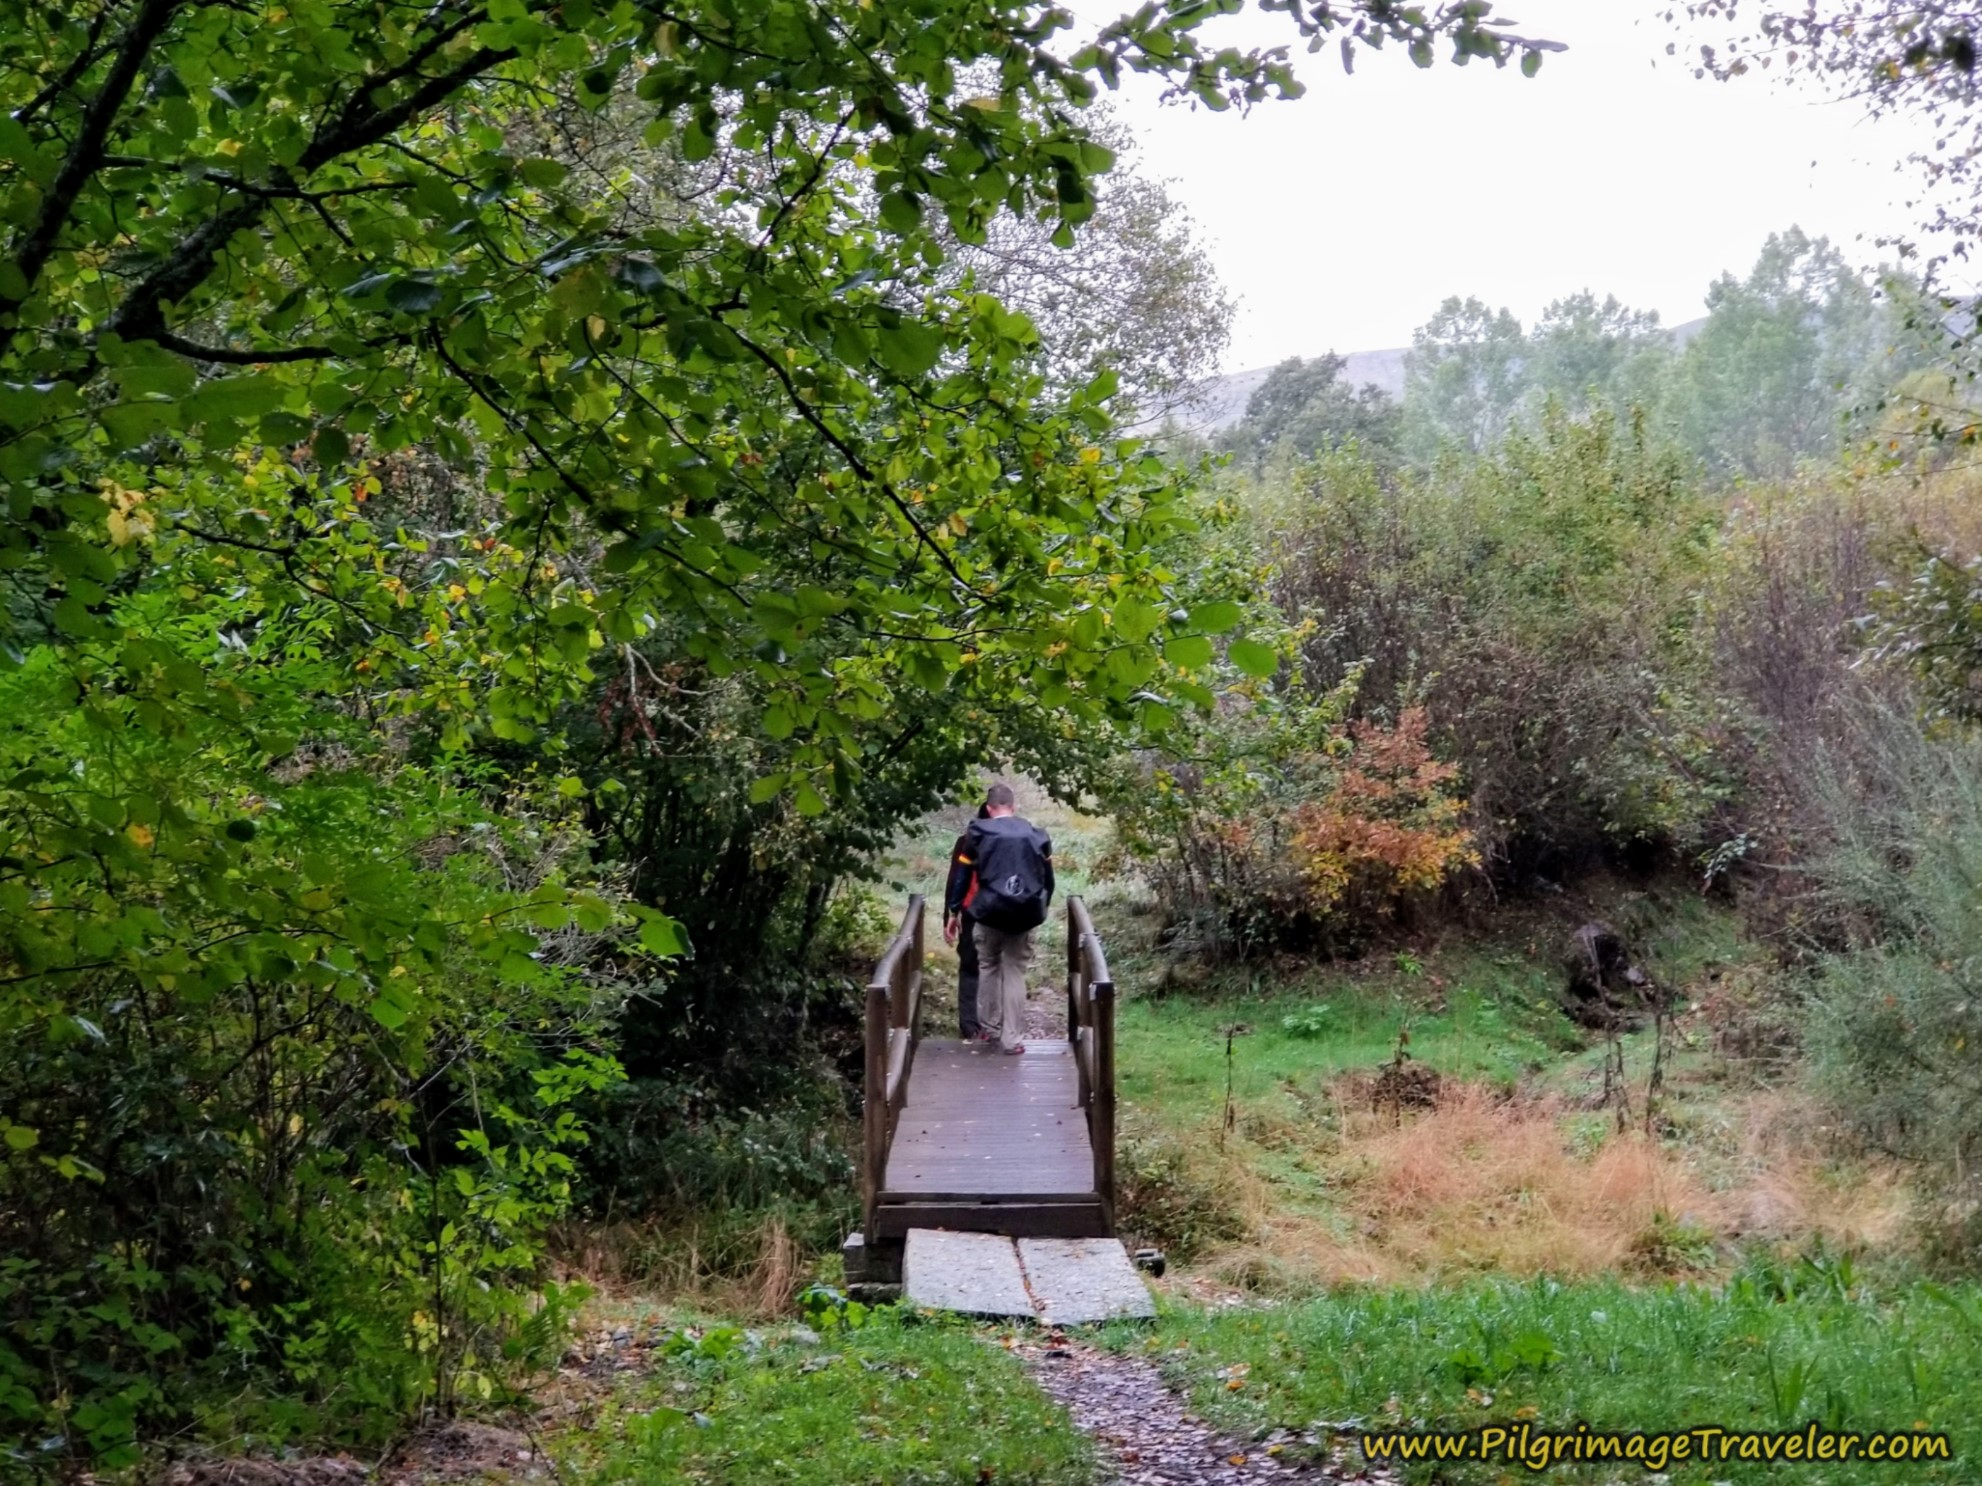 Crossing the Arroyo de la Tuiza on the Camino Sanabrés from Lubián to A Gudiña